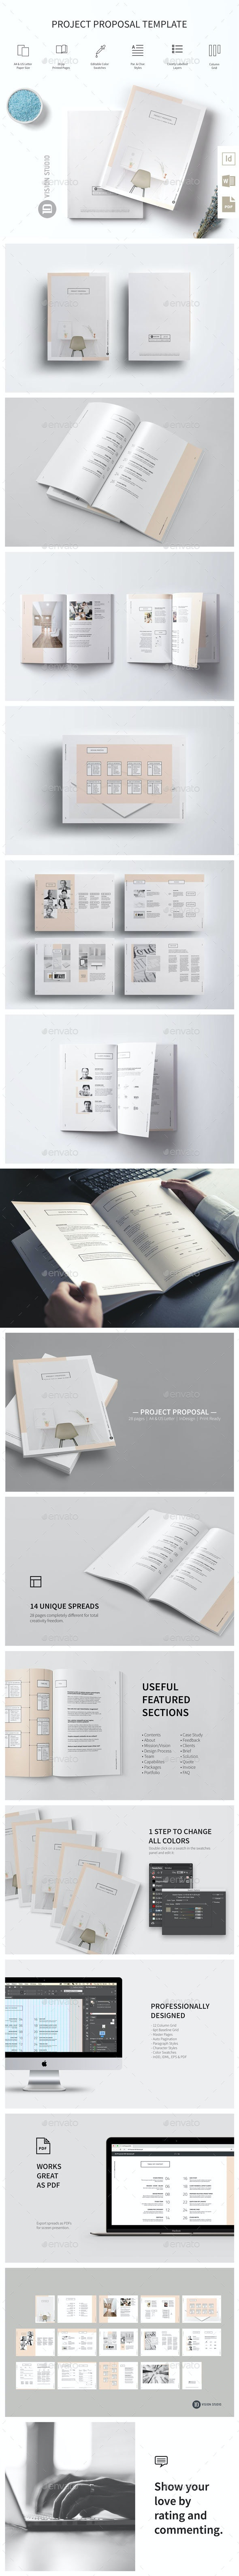 Project Proposal Template 005 Minimalist - Proposals & Invoices Stationery